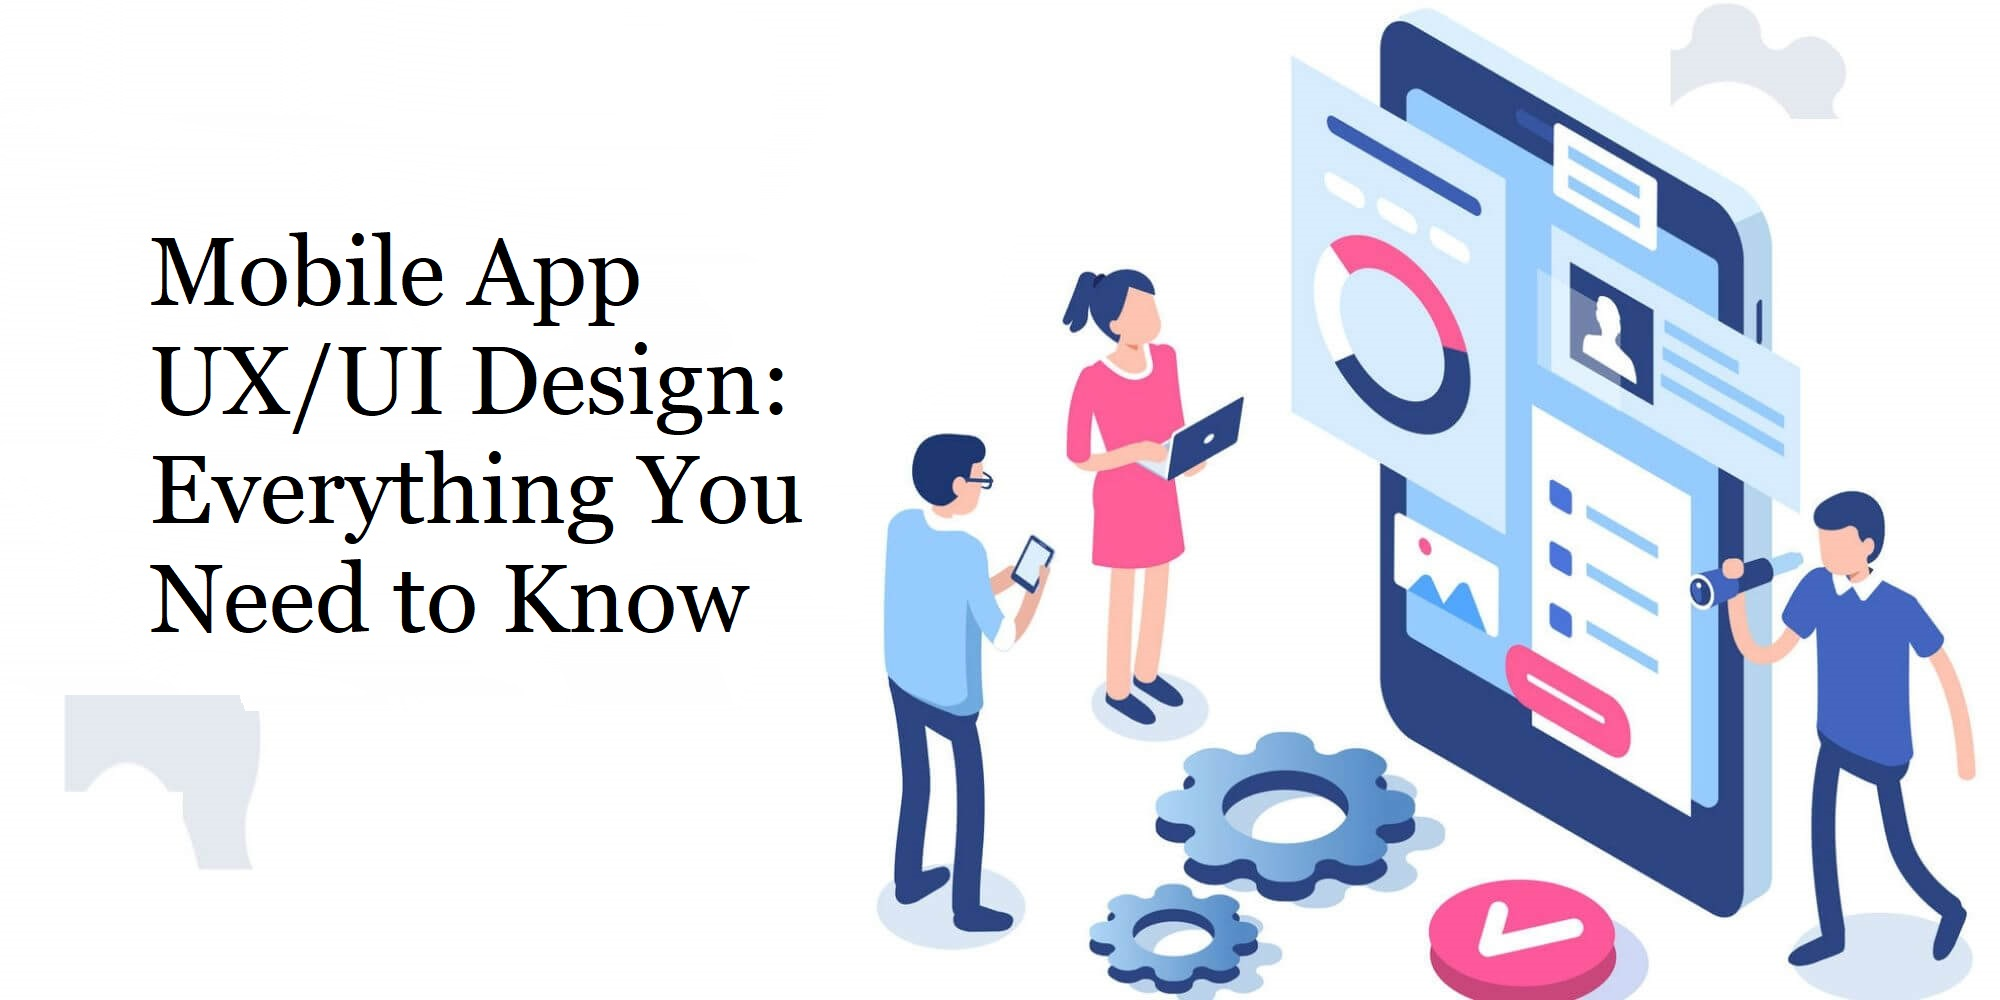 Mobile App UX UI Design Everything You Need to Know